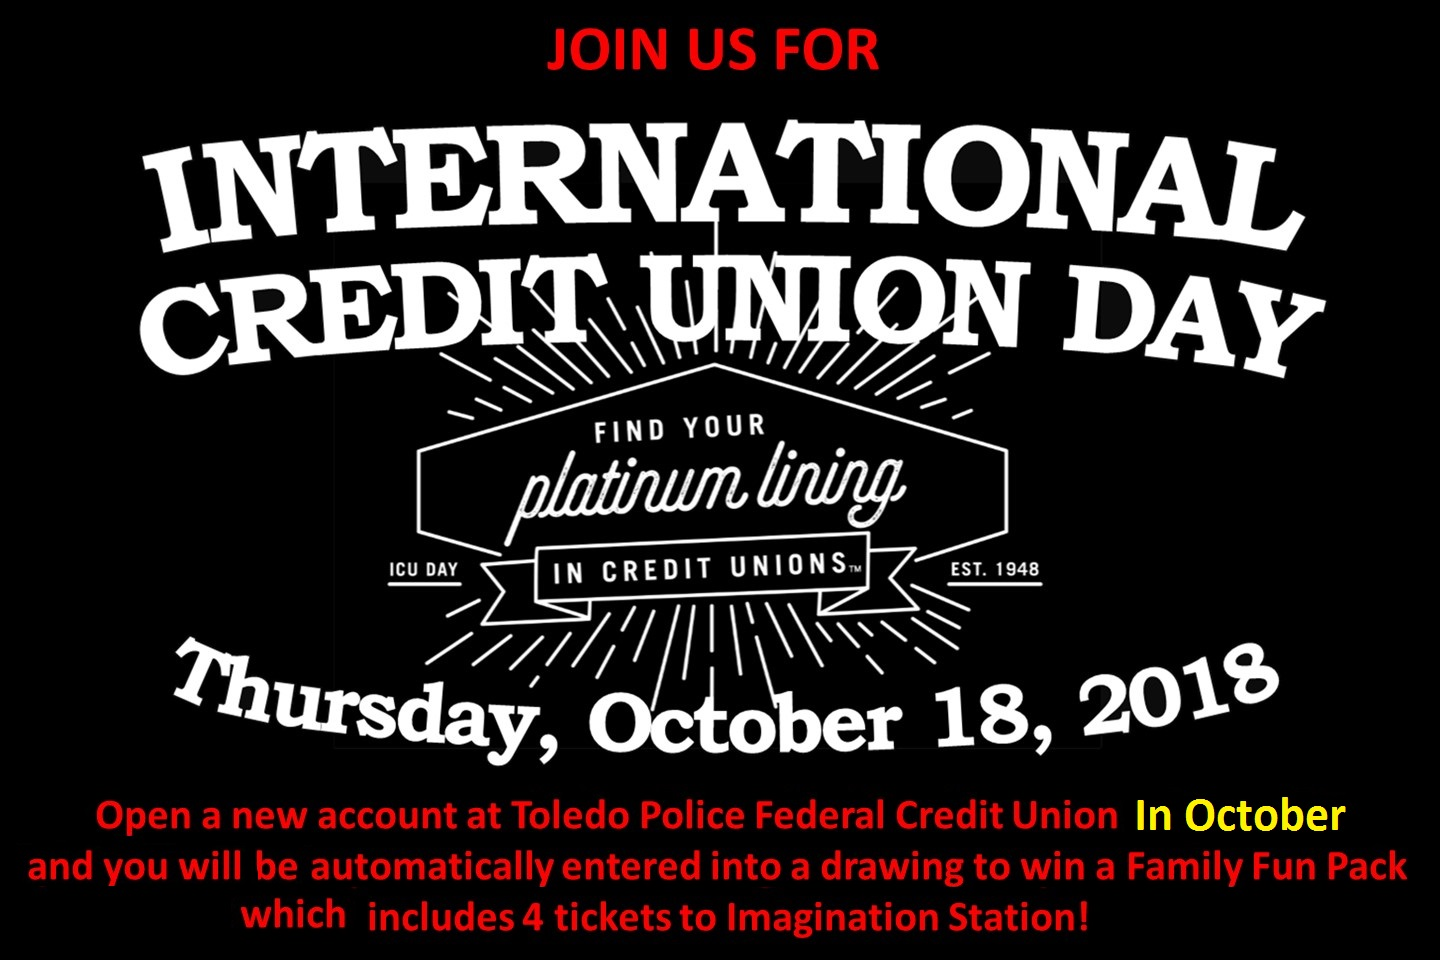 Credit Union Day- Open an account in October to enter to win 4 tickets to imagination station